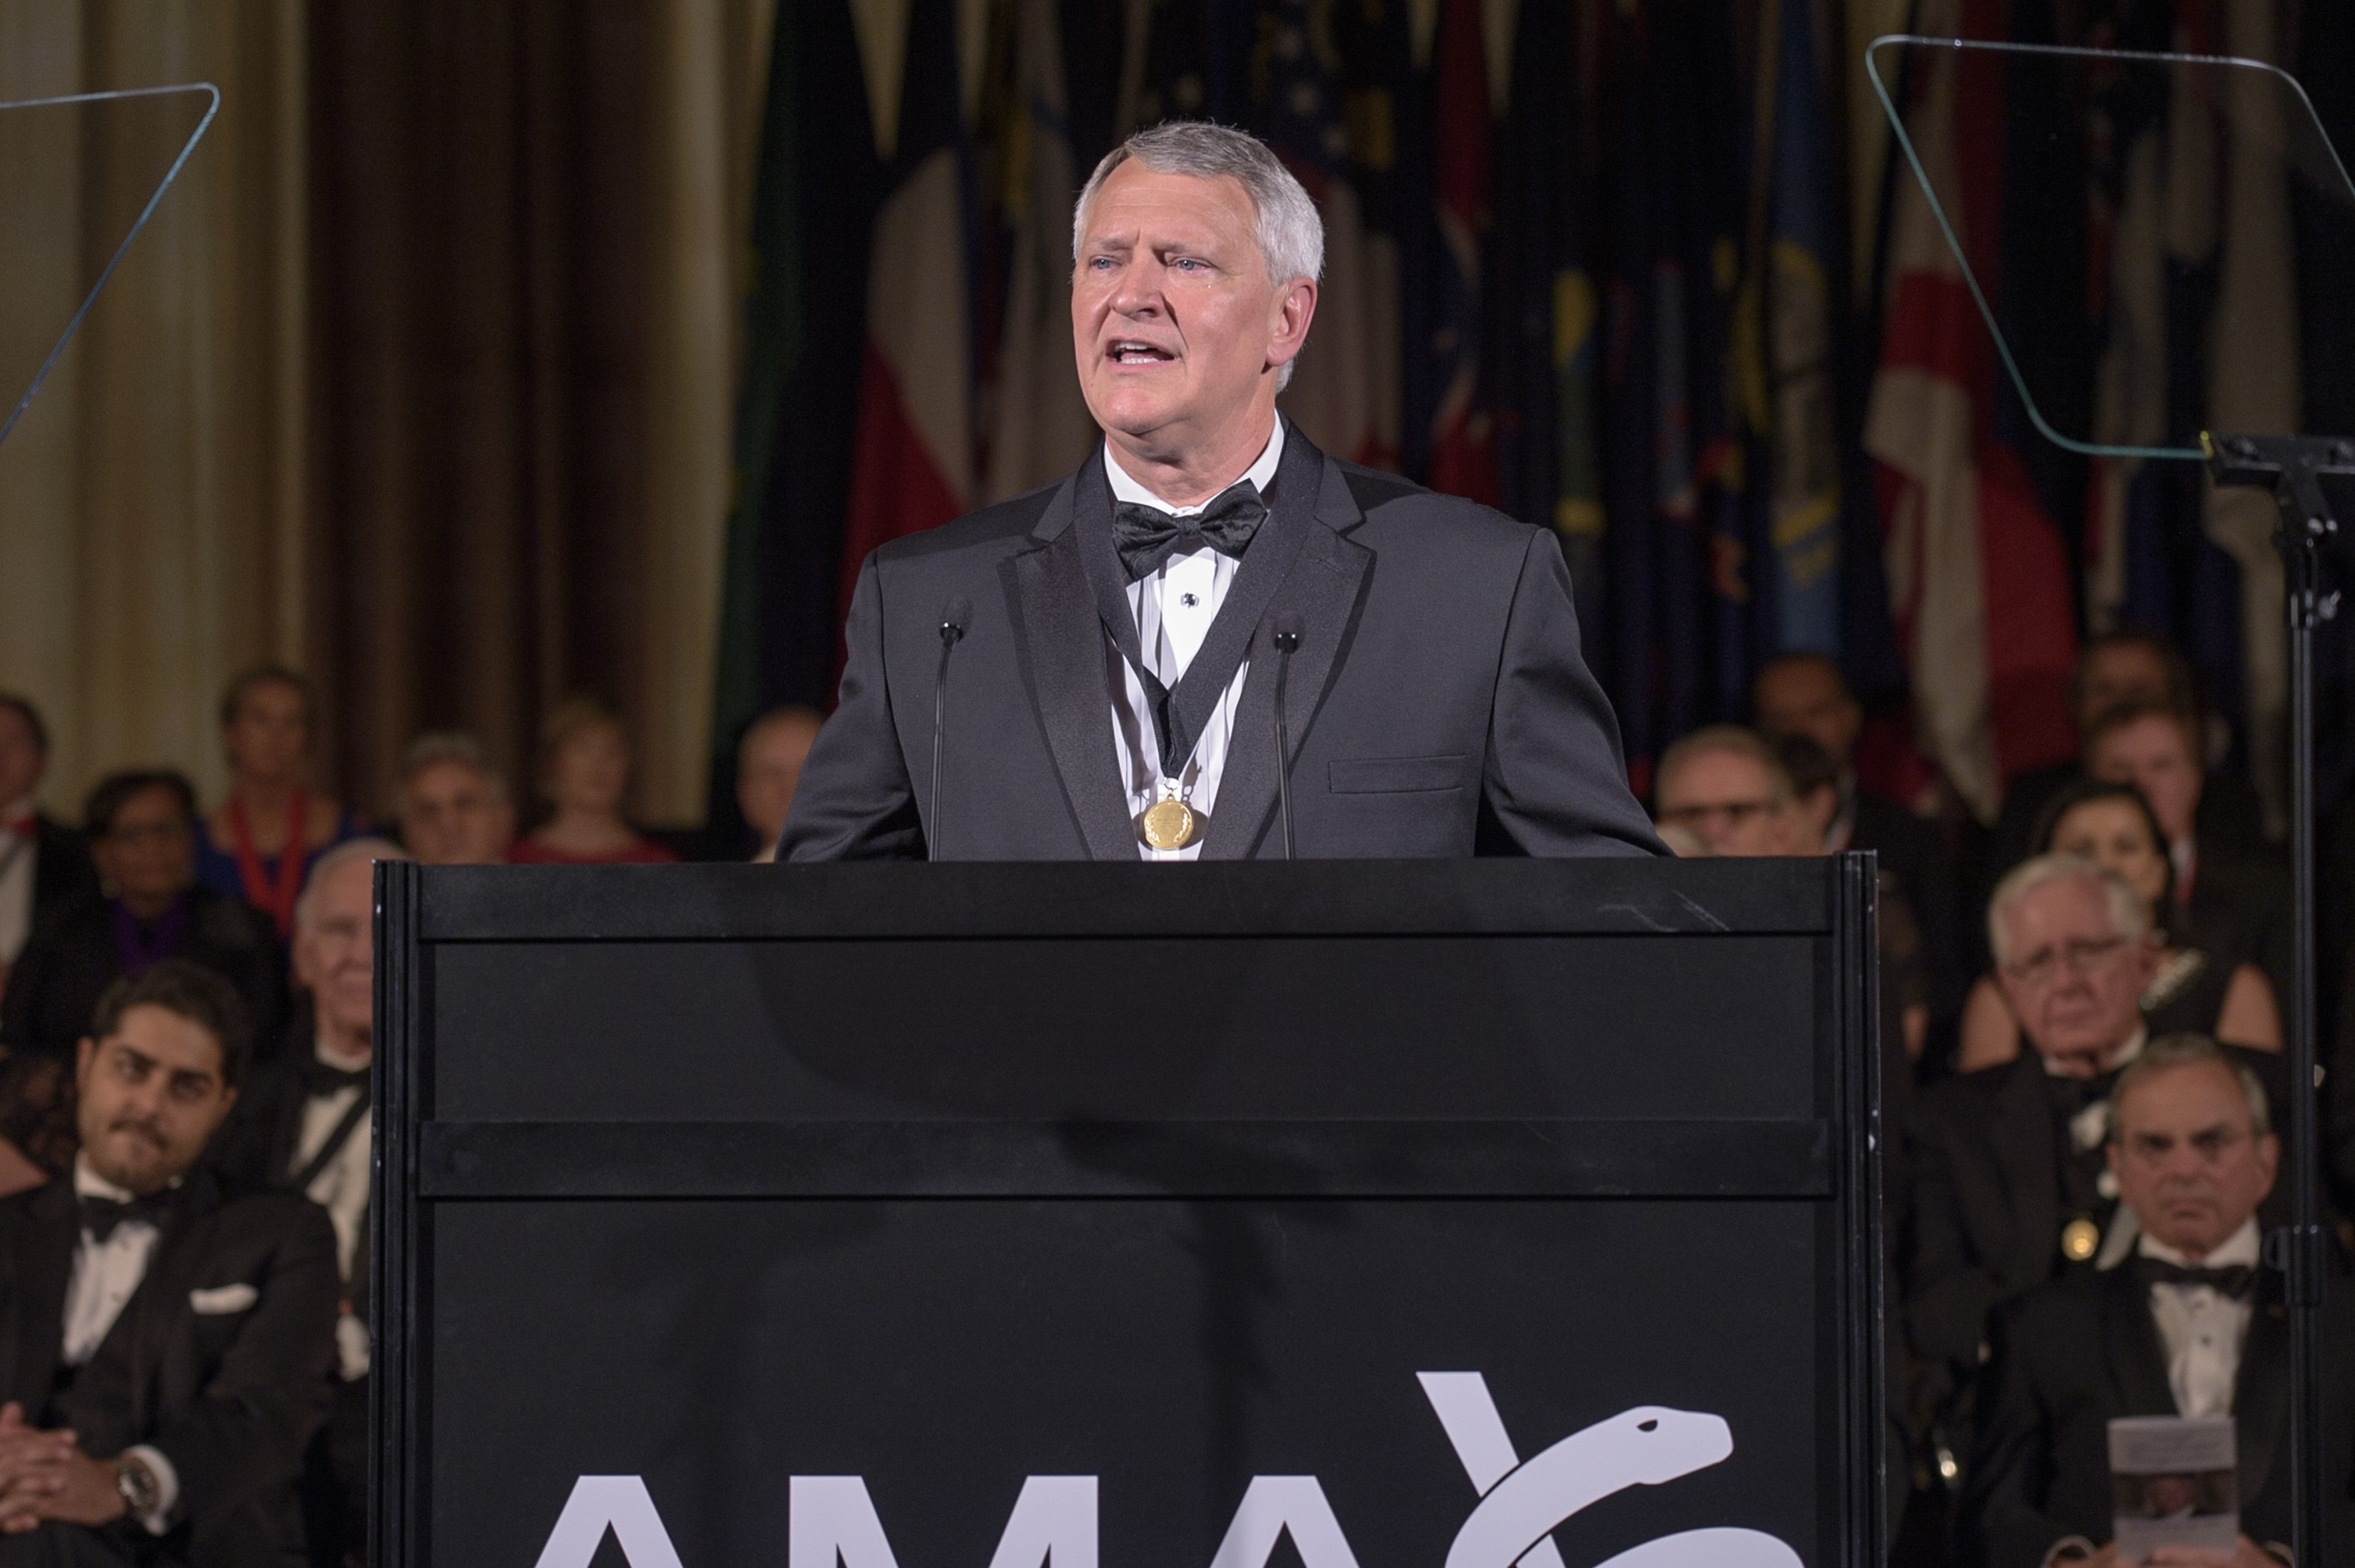 Dr. David Barbe, a Mercy physician from Mountain Grove, Missouri, addresses the American Medical Association House of Delegates just after taking the oath of office as the organization's president.